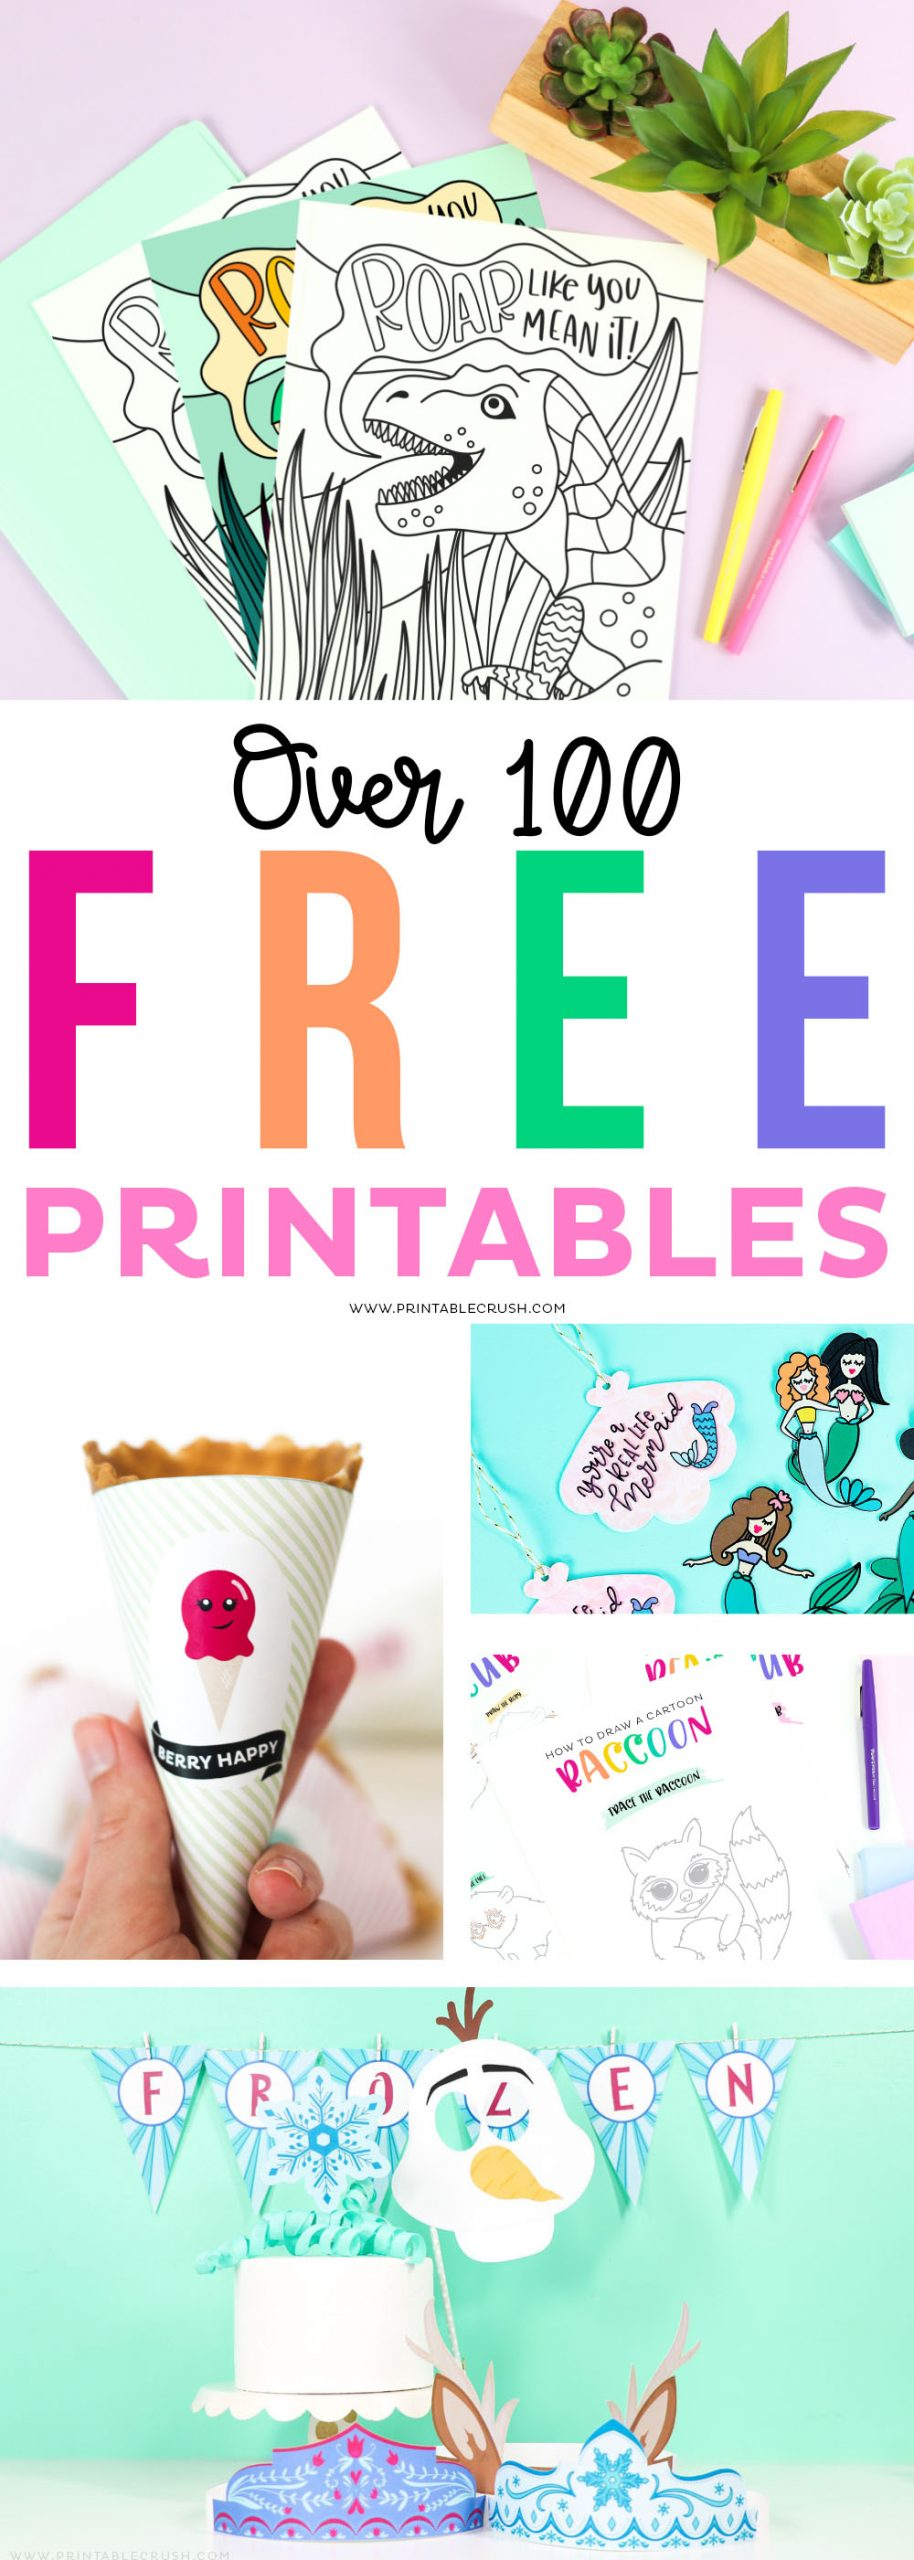 Printables for every occasion - over 100 free printables - printable crush